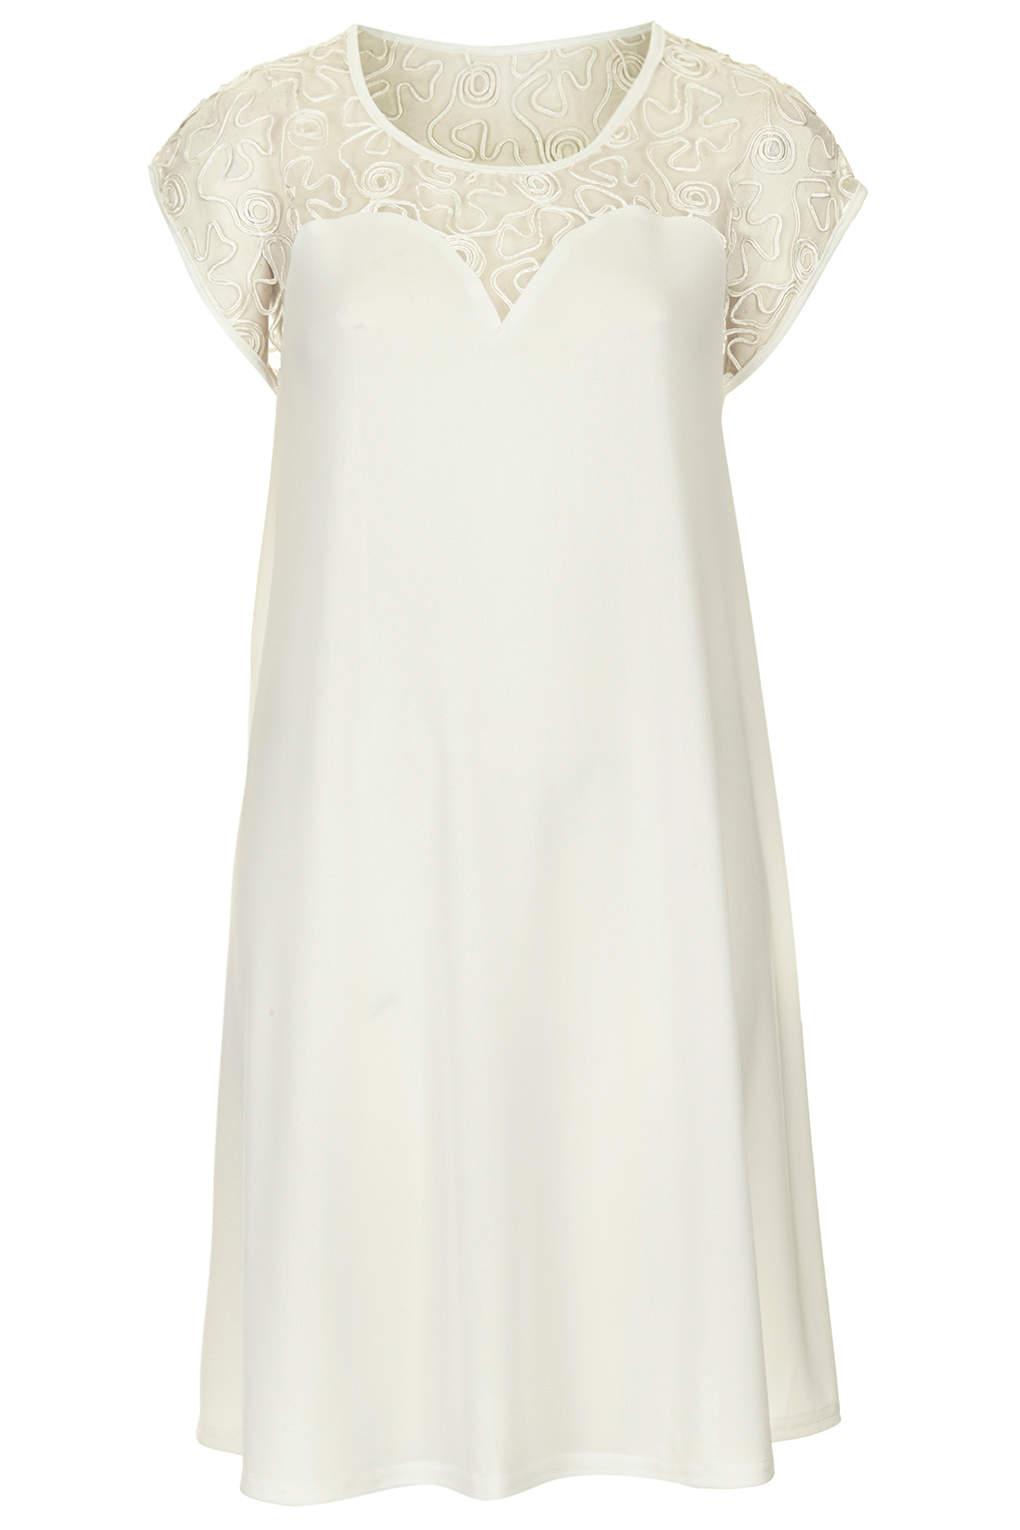 **White Cornelli Slinky Swing Dress by Rare - Dresses - Clothing